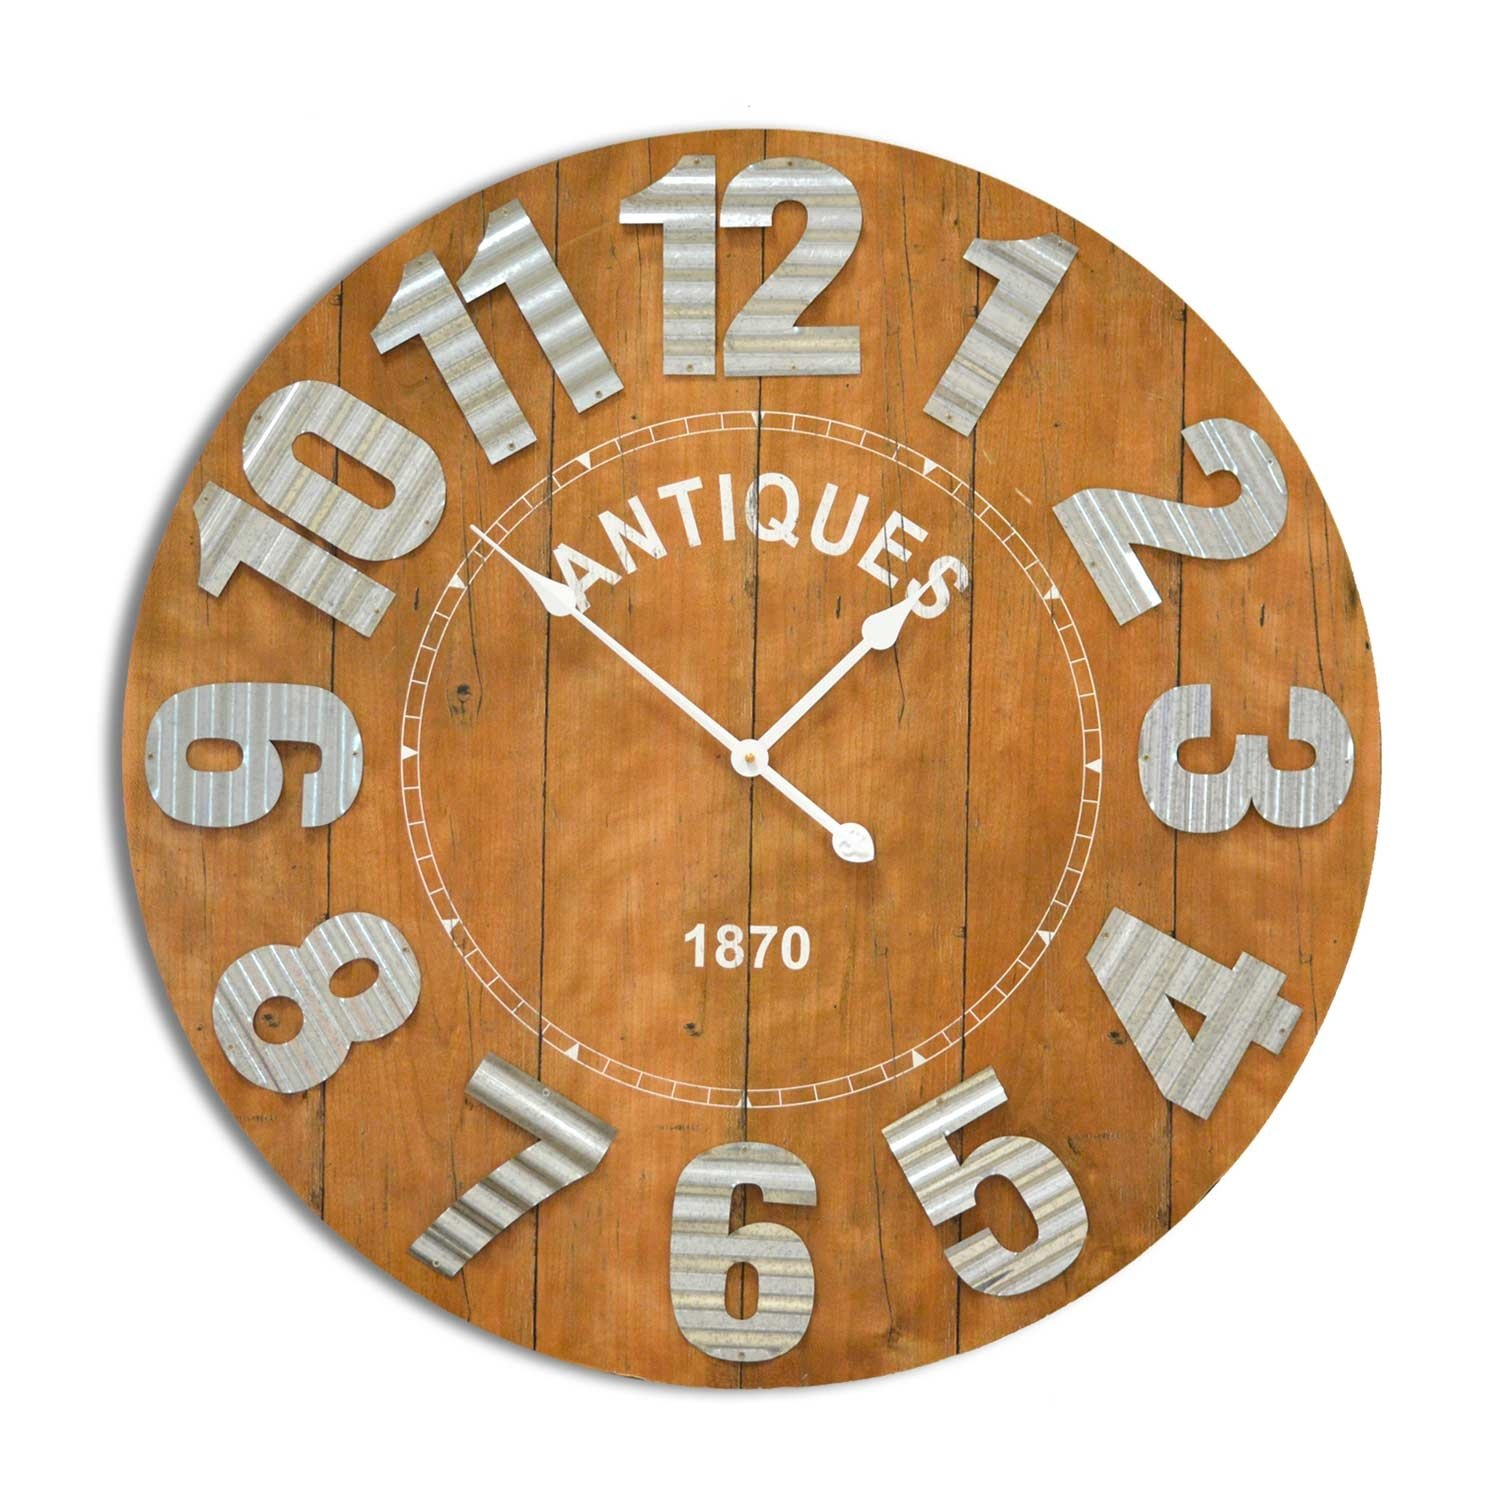 Reloj de pared antiq ventamueblesonline - Reloj de pared vinilo ...